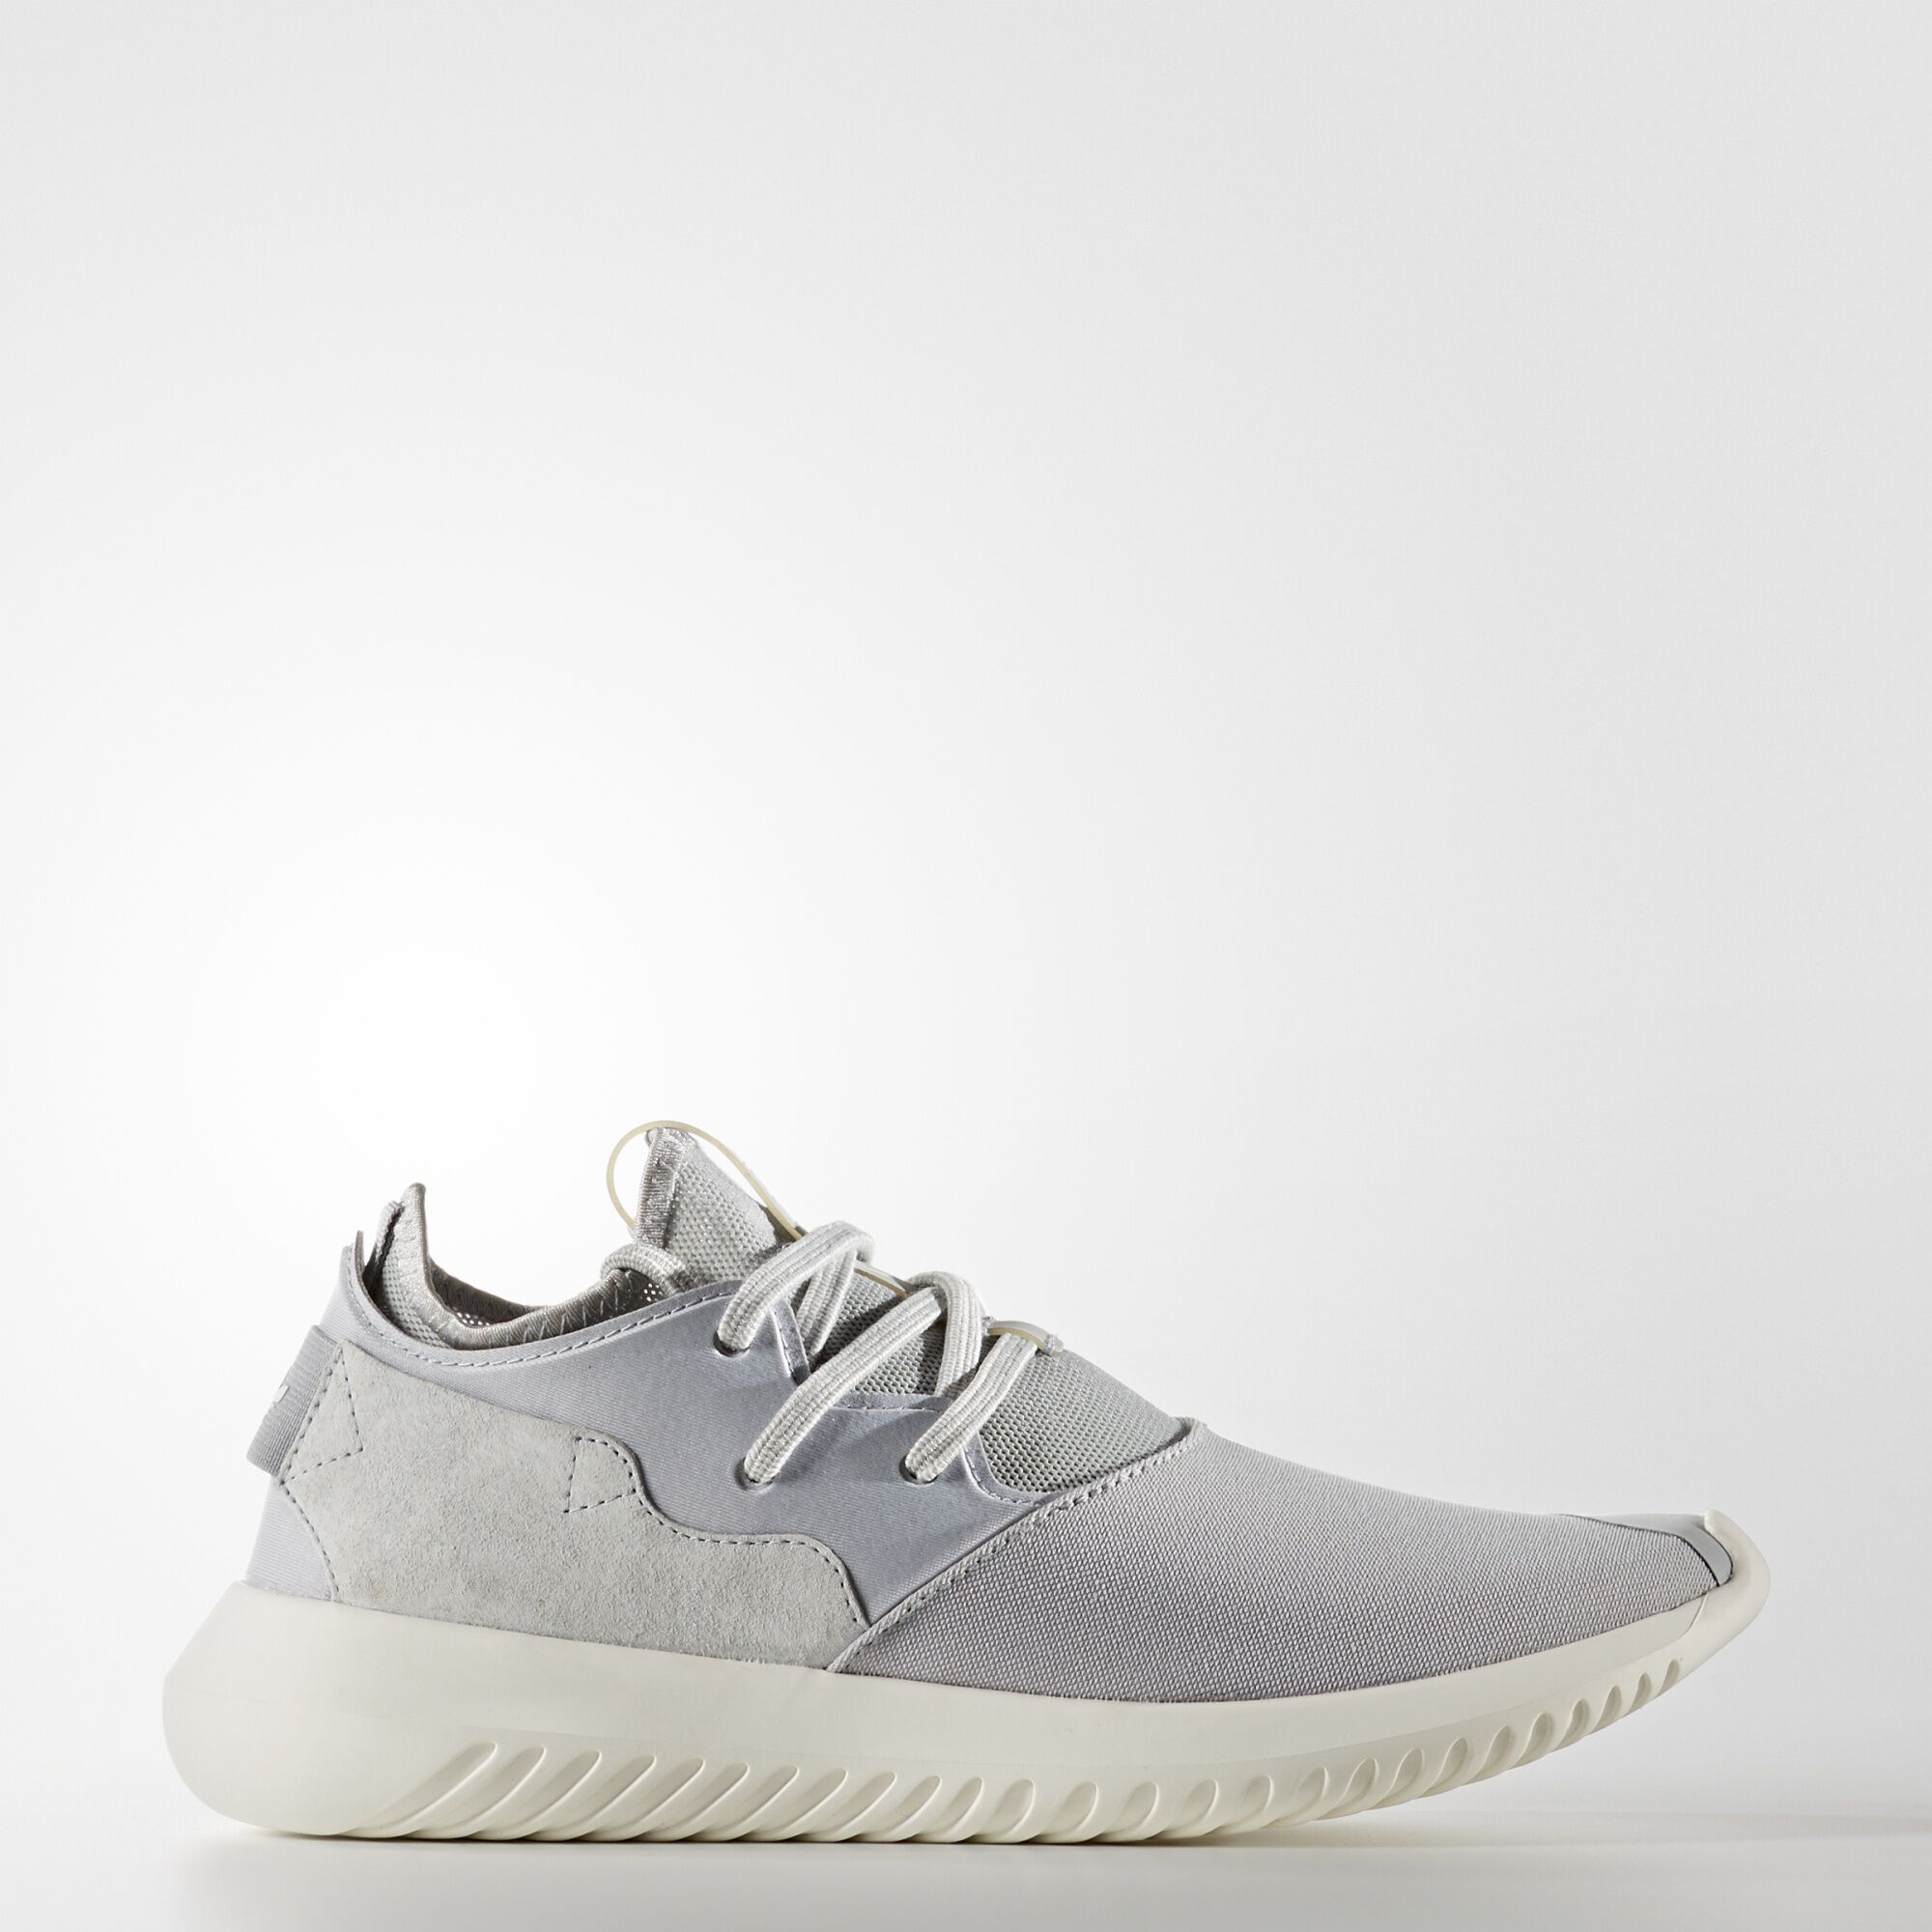 adidas tubular entrap shoes grey adidas us. Black Bedroom Furniture Sets. Home Design Ideas